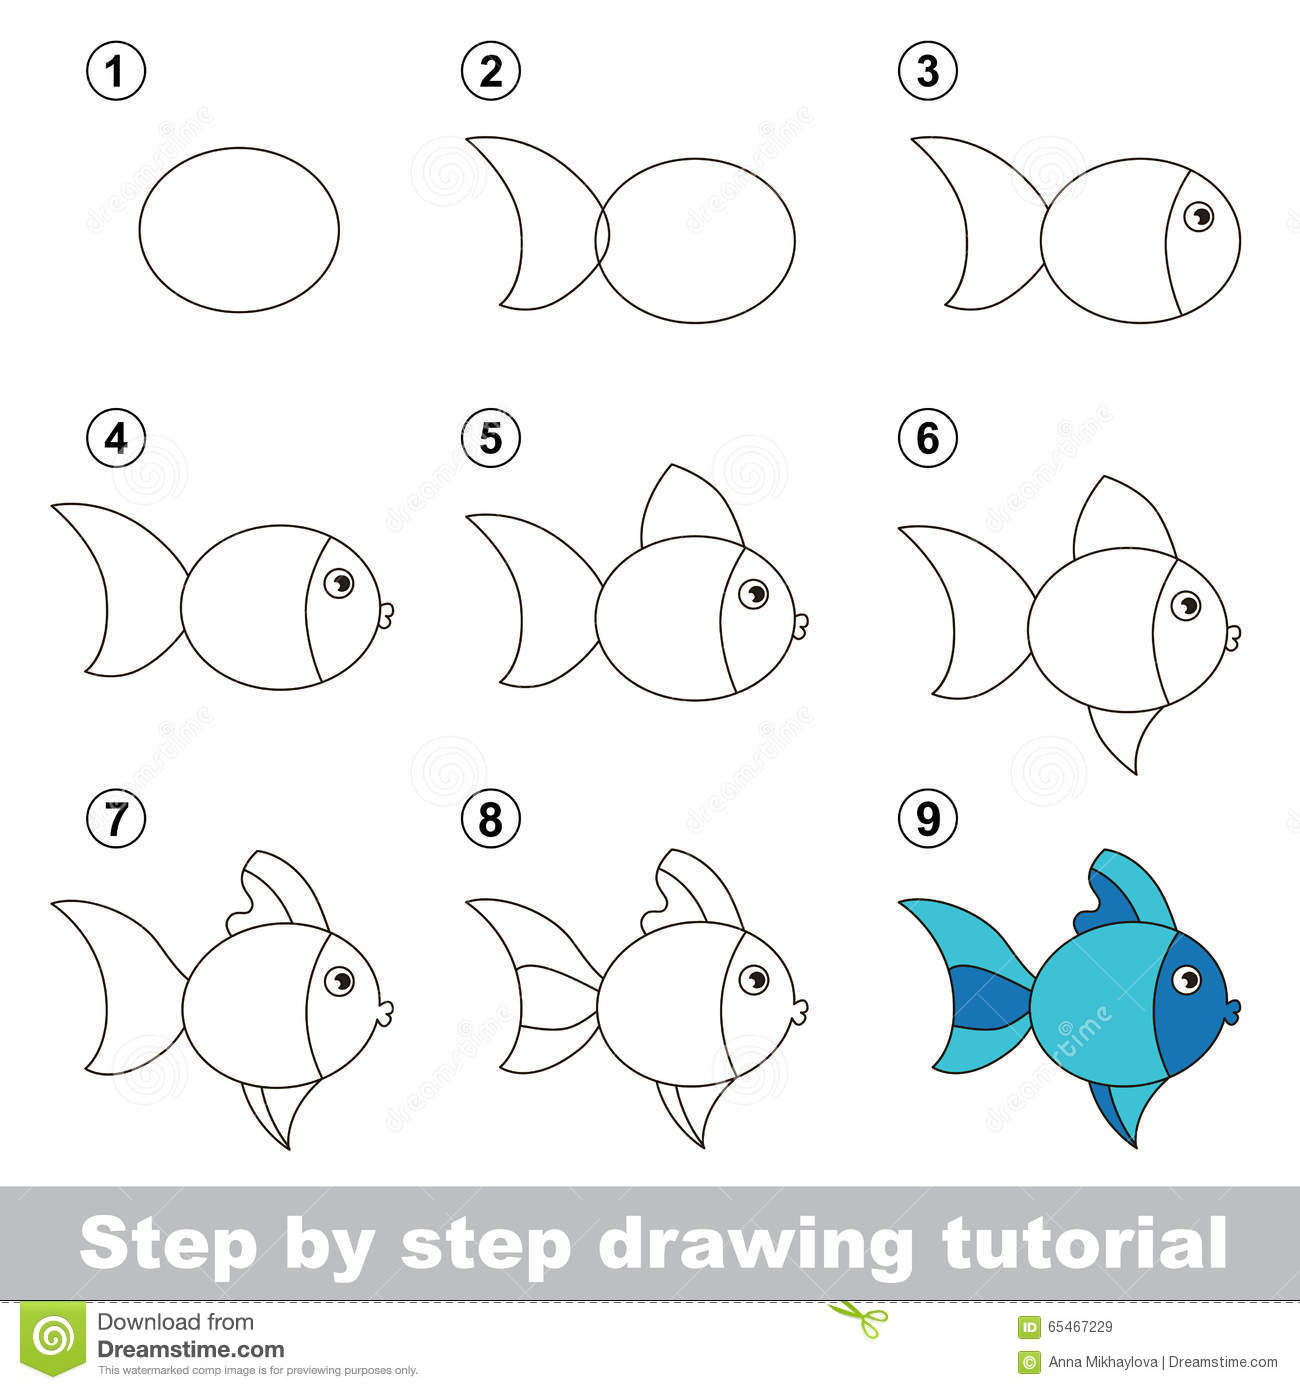 how to draw d orbi